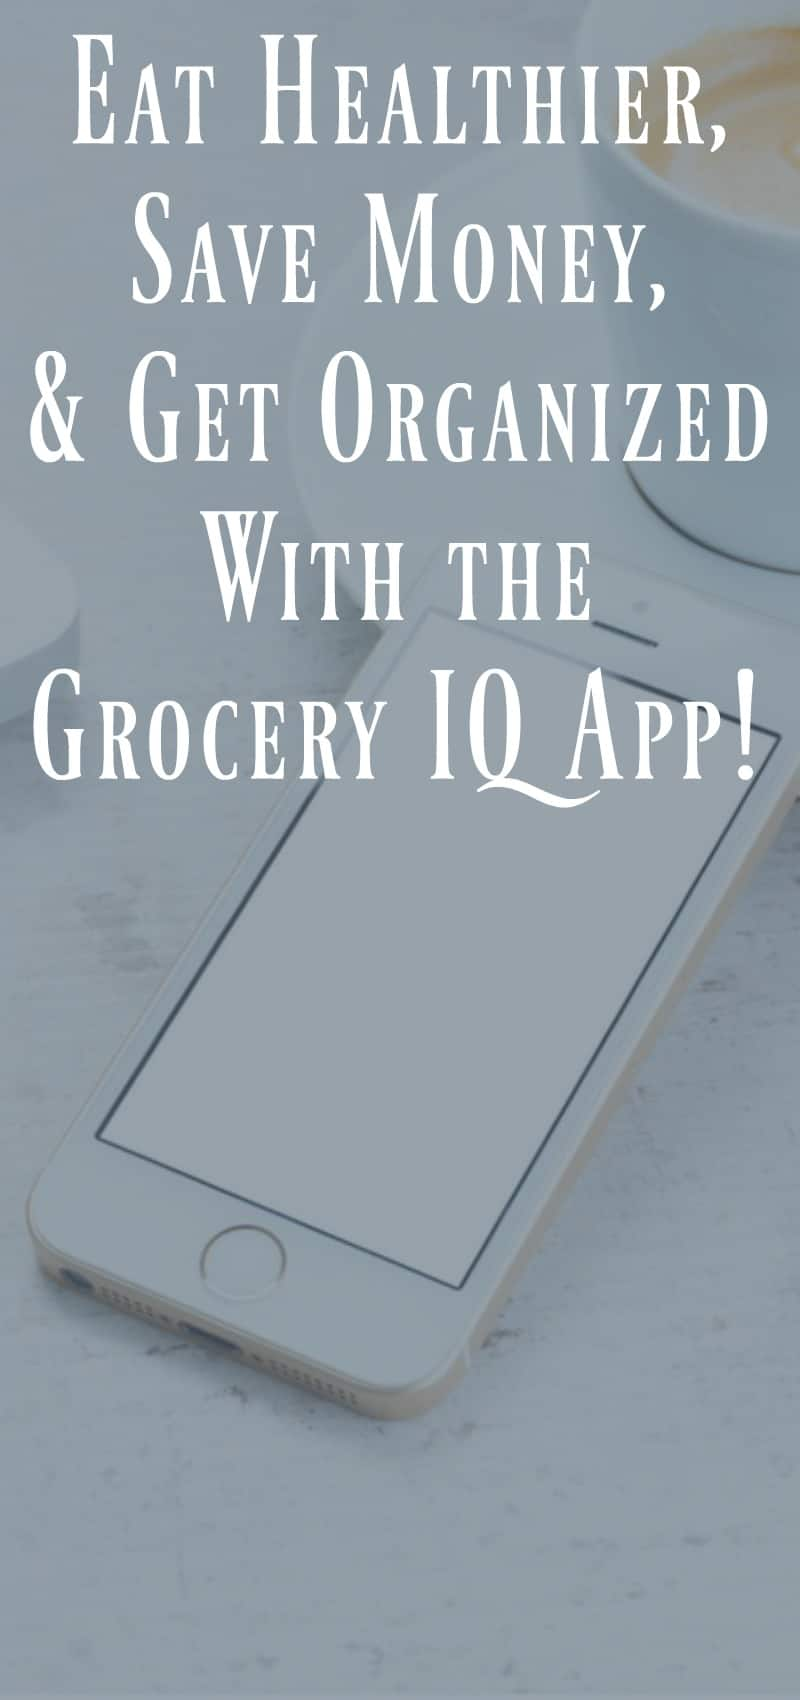 Eat Healthier, Save Money, and Get Organize With The Grocery IQ App!